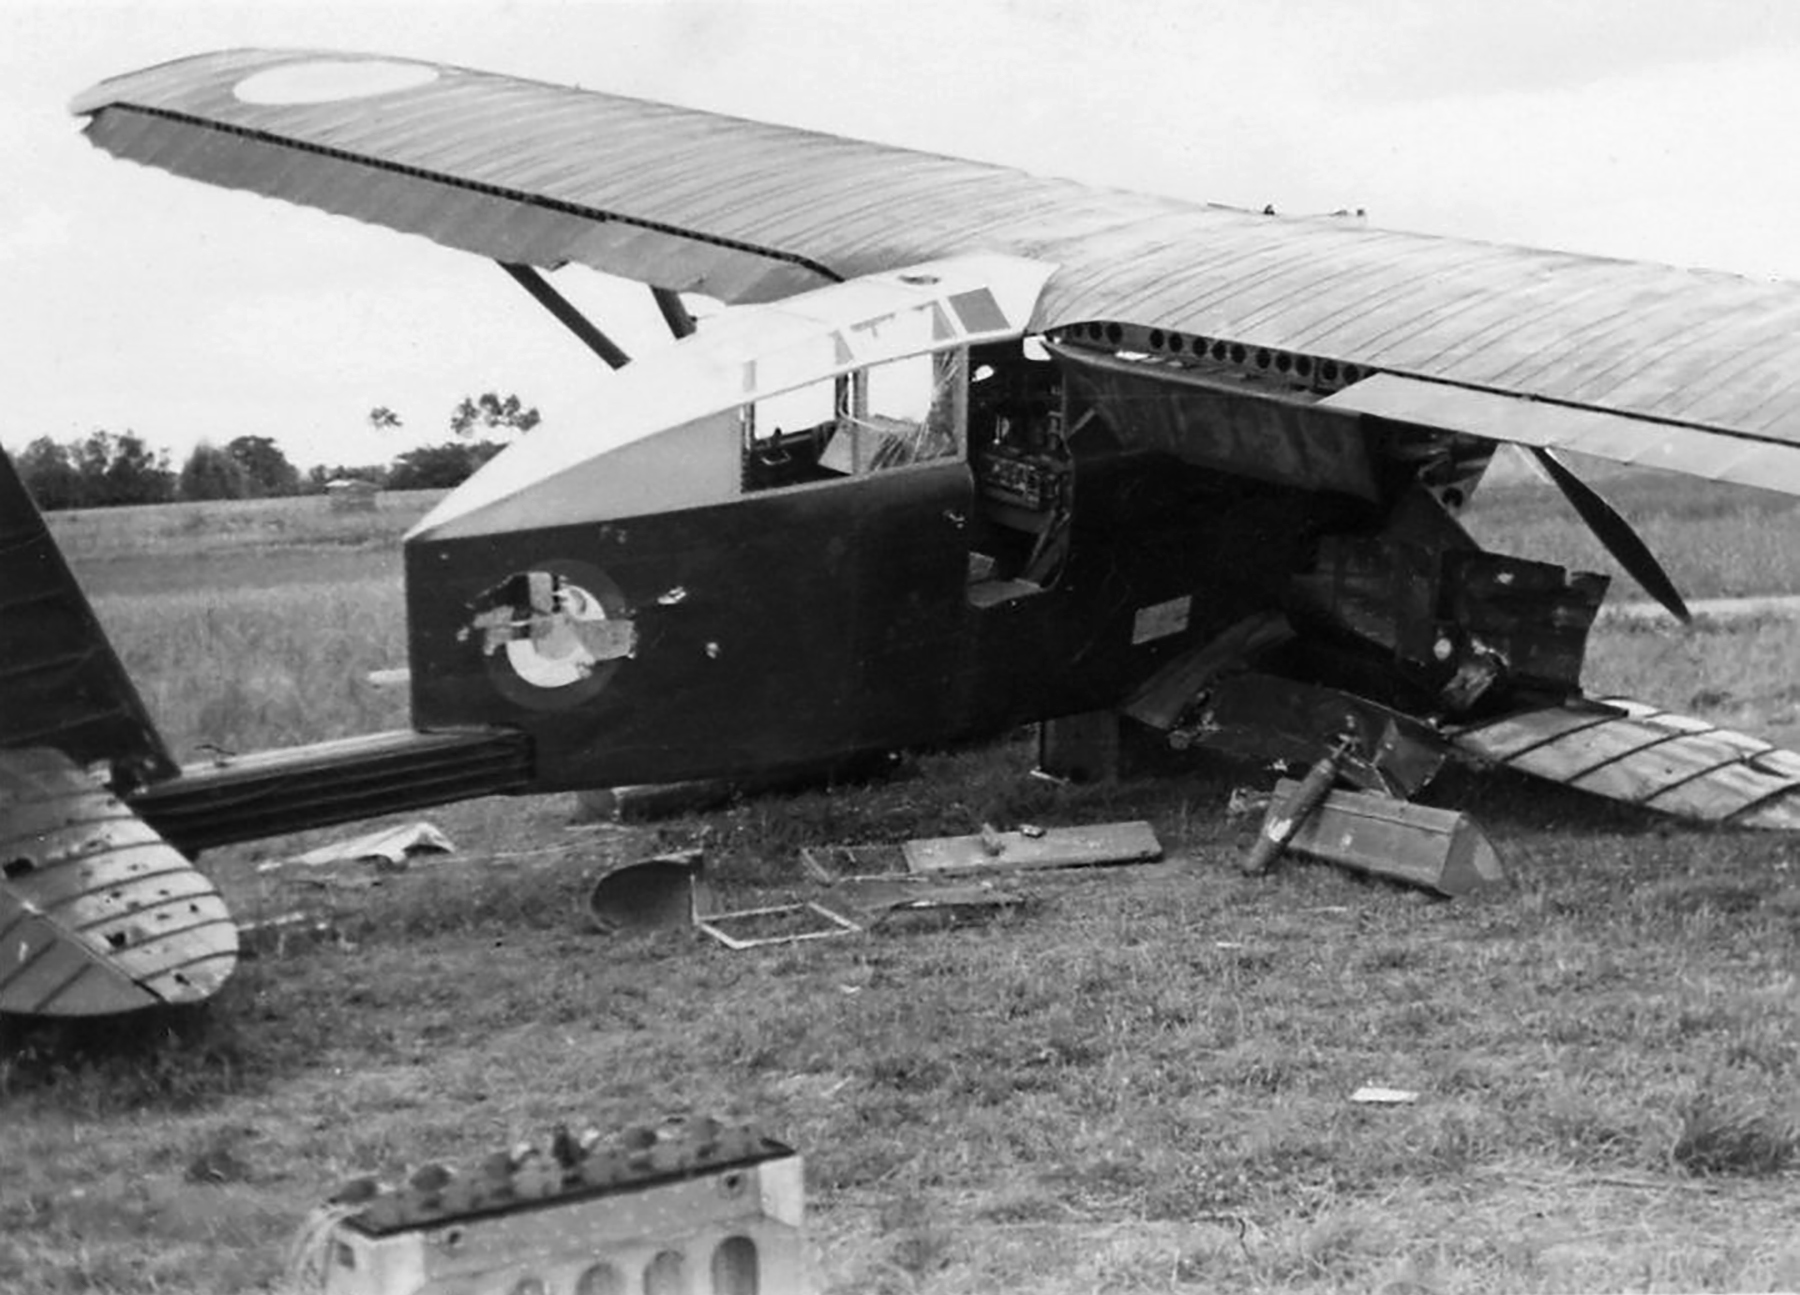 French Airforce Breguet 270 destroyed whilst on the ground battle of France May Jun 1940 ebay 04